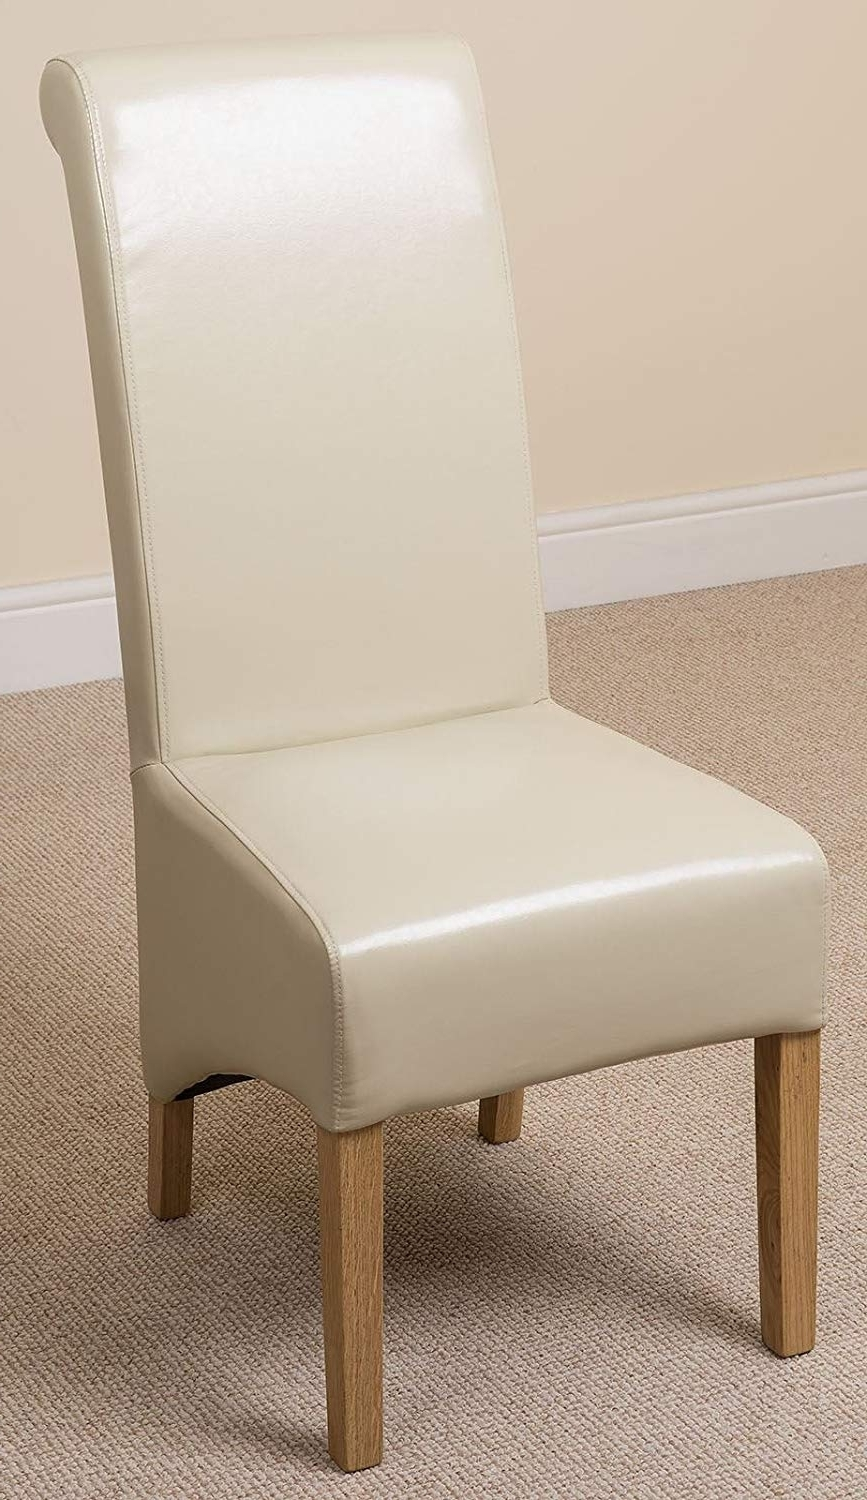 Widely Used Ivory Leather Dining Chairs For Amazon – X6 Montana Scroll Back Leather Dining Chairs (Ivory) (View 10 of 25)